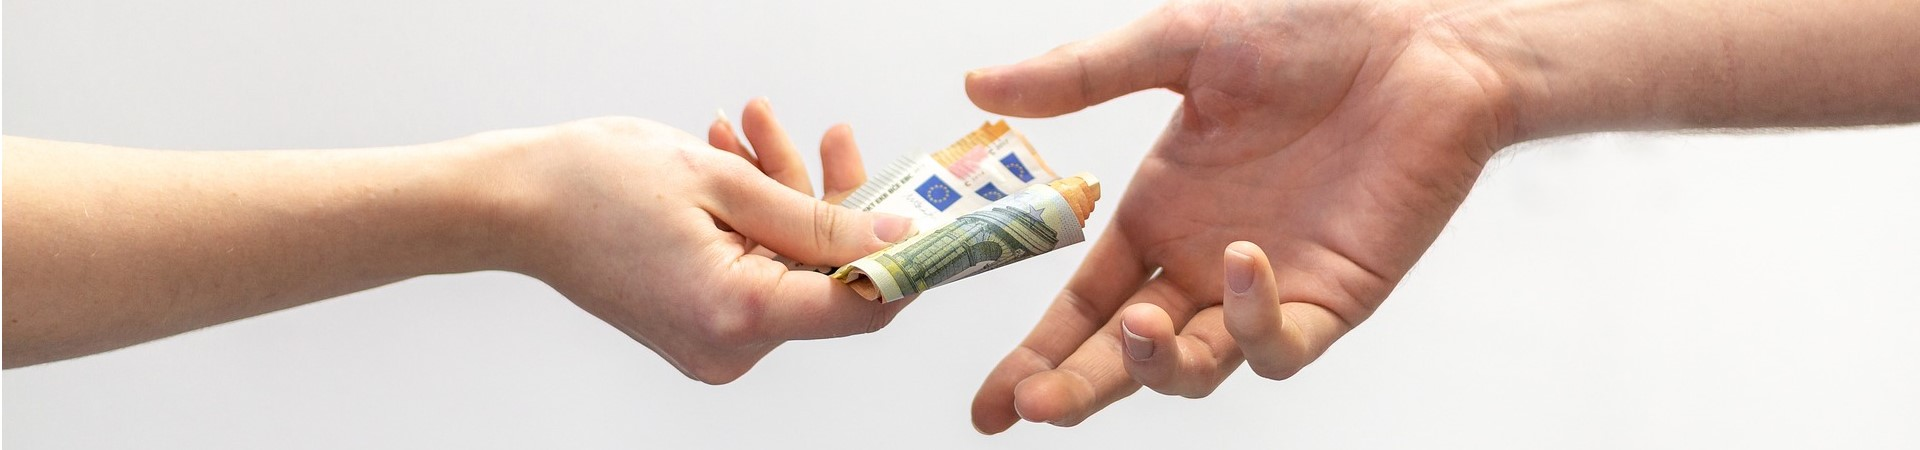 Female hand giving money to male hand